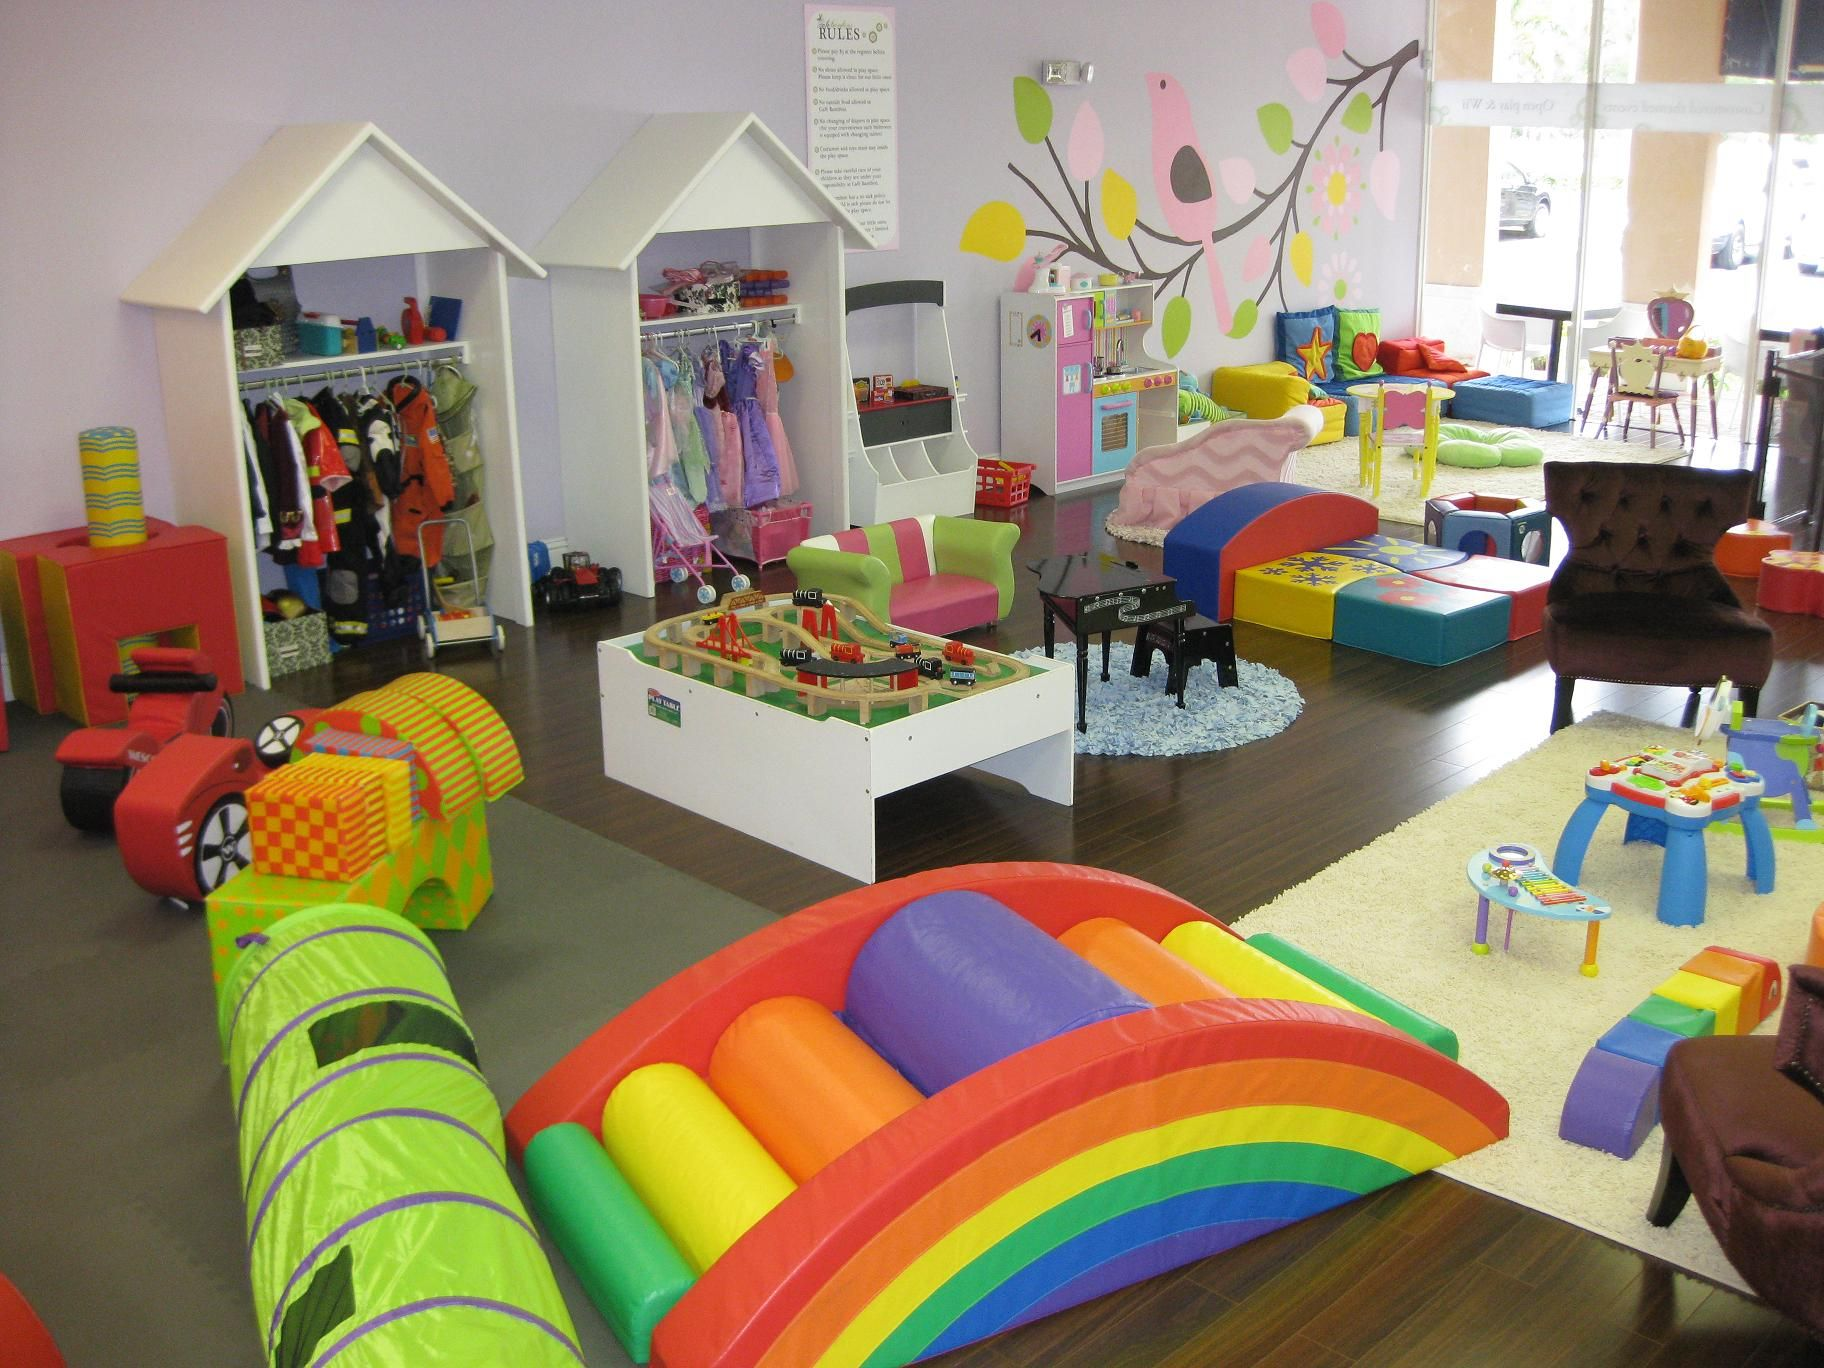 Play room kids kids kids pinterest plays room and for Indoor playground design ideas